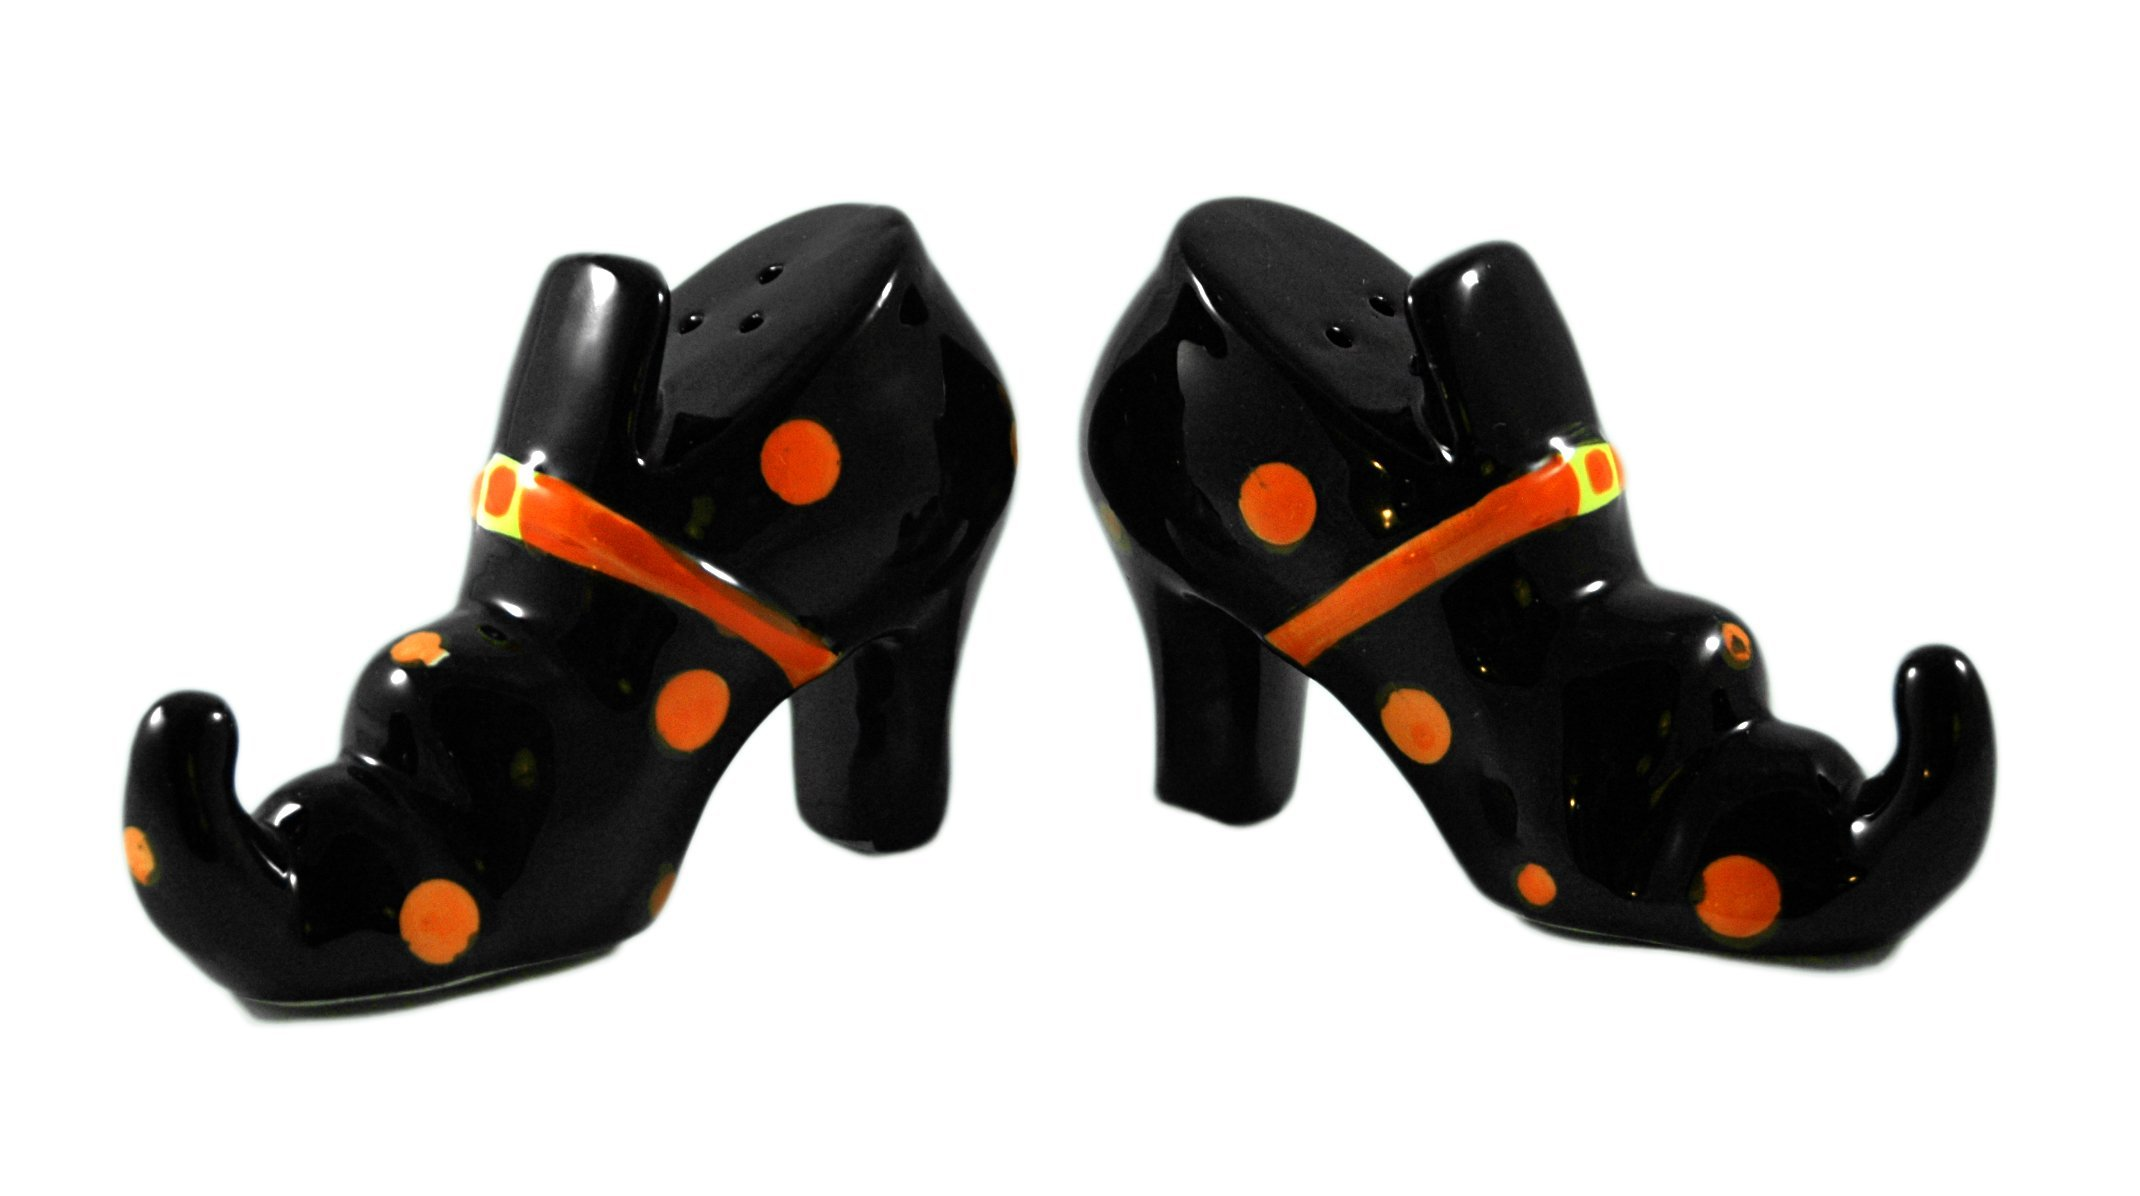 Wicked Witch Shoe Ceramic Salt & Pepper Shakers